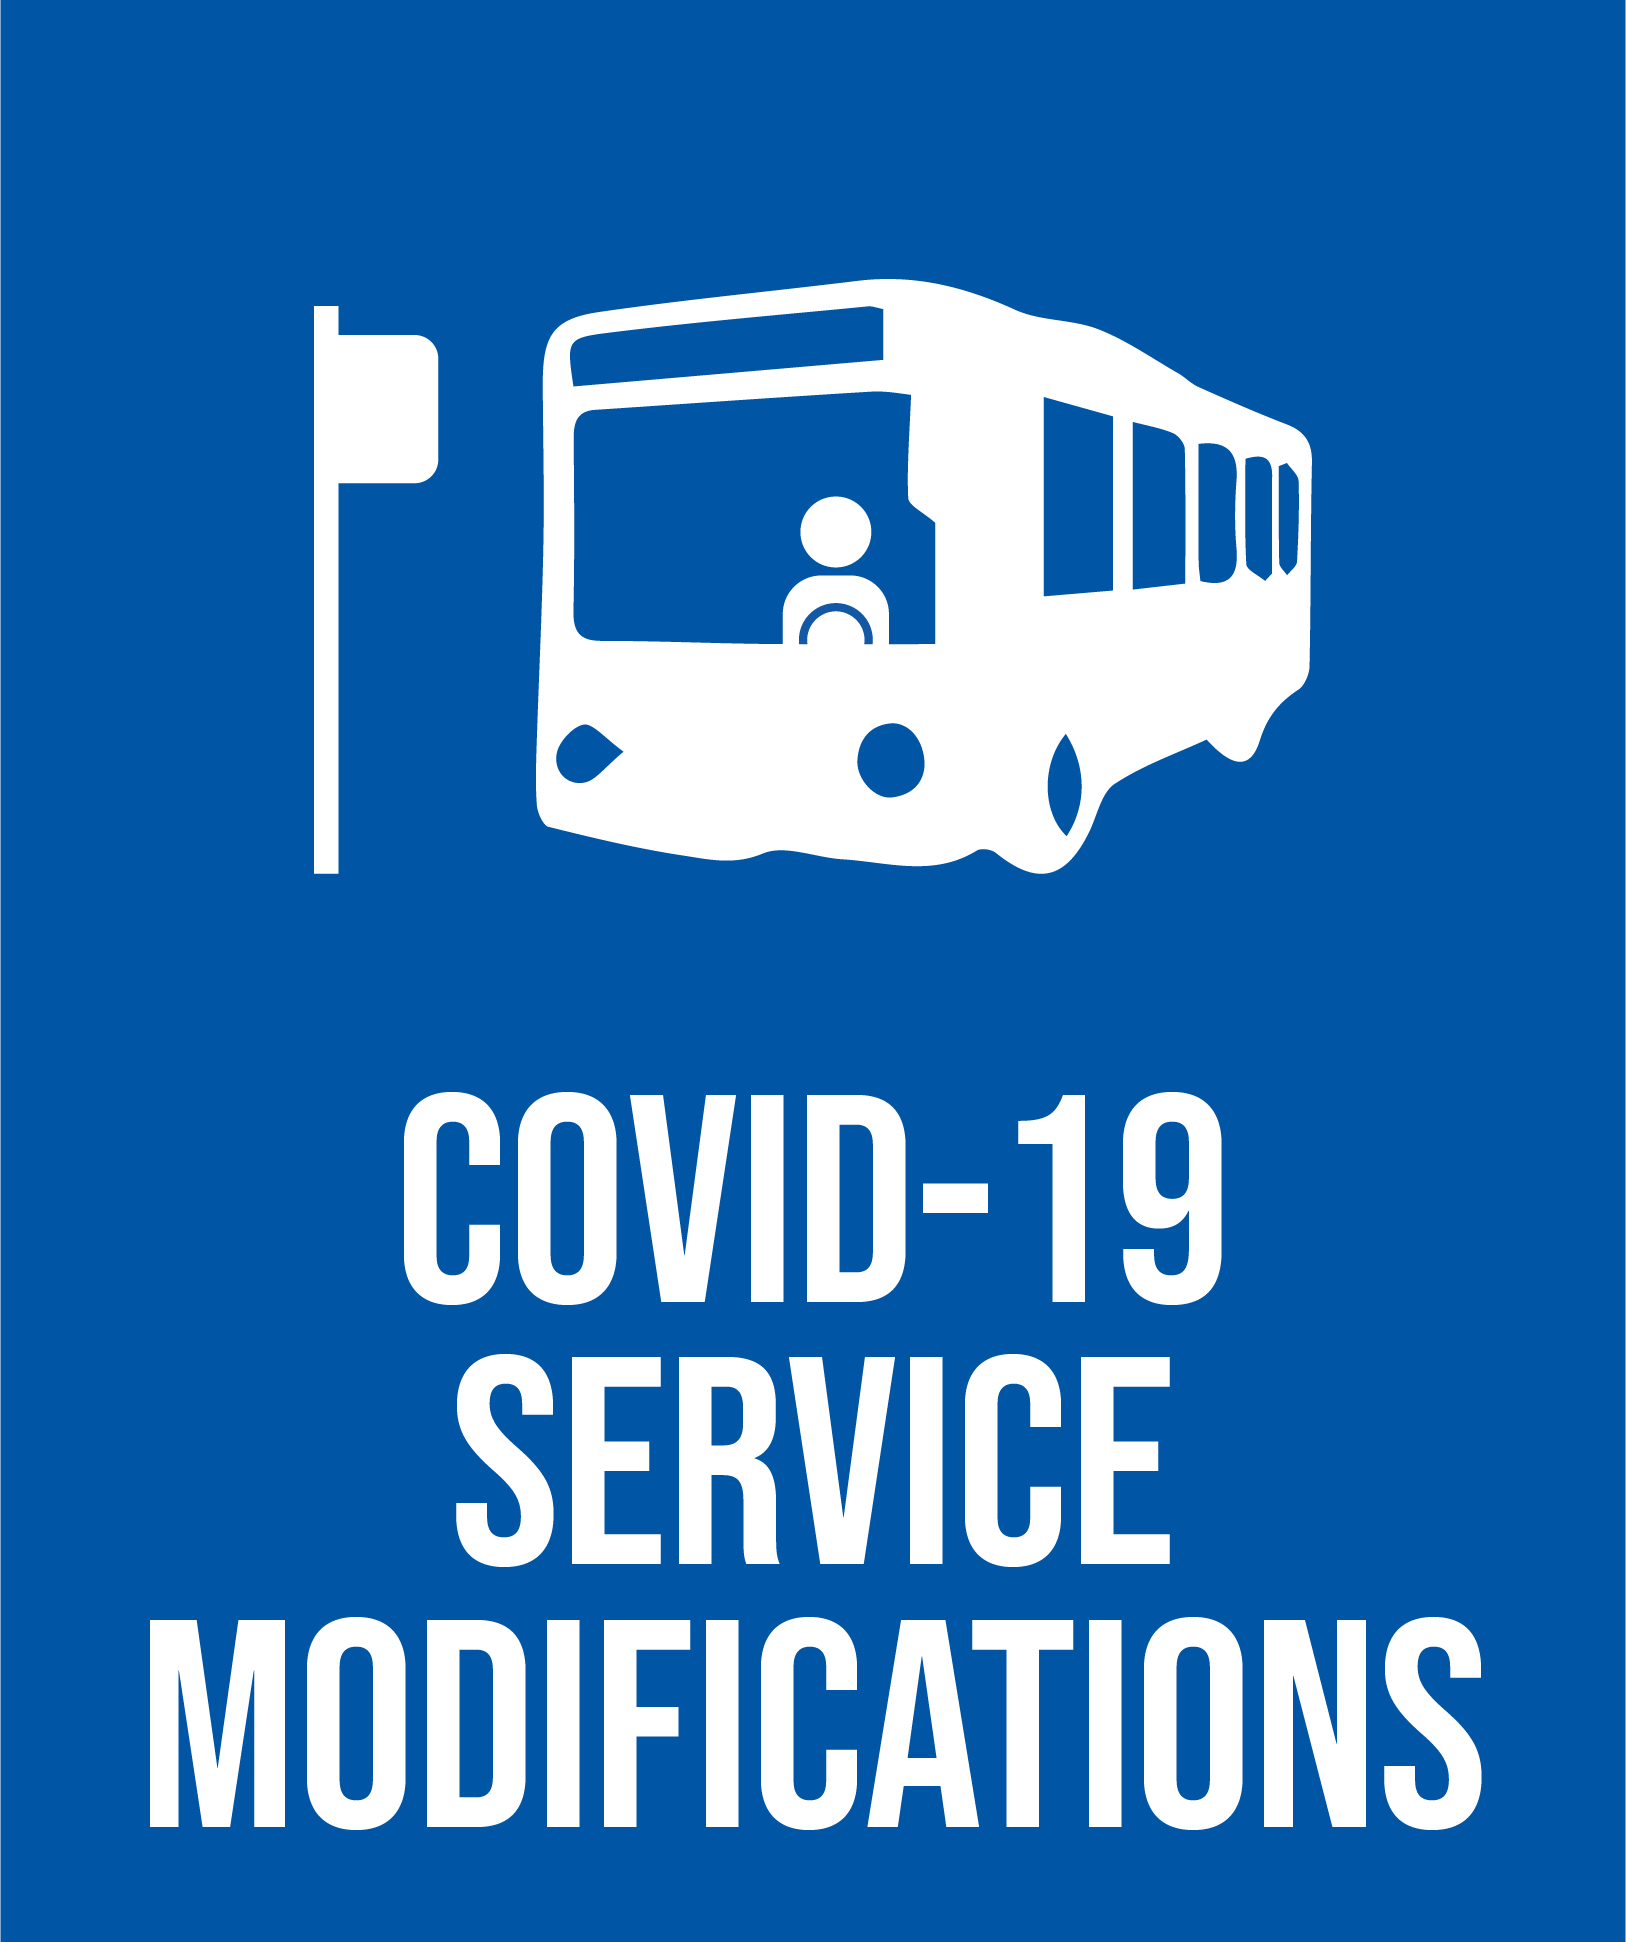 Service Modifications